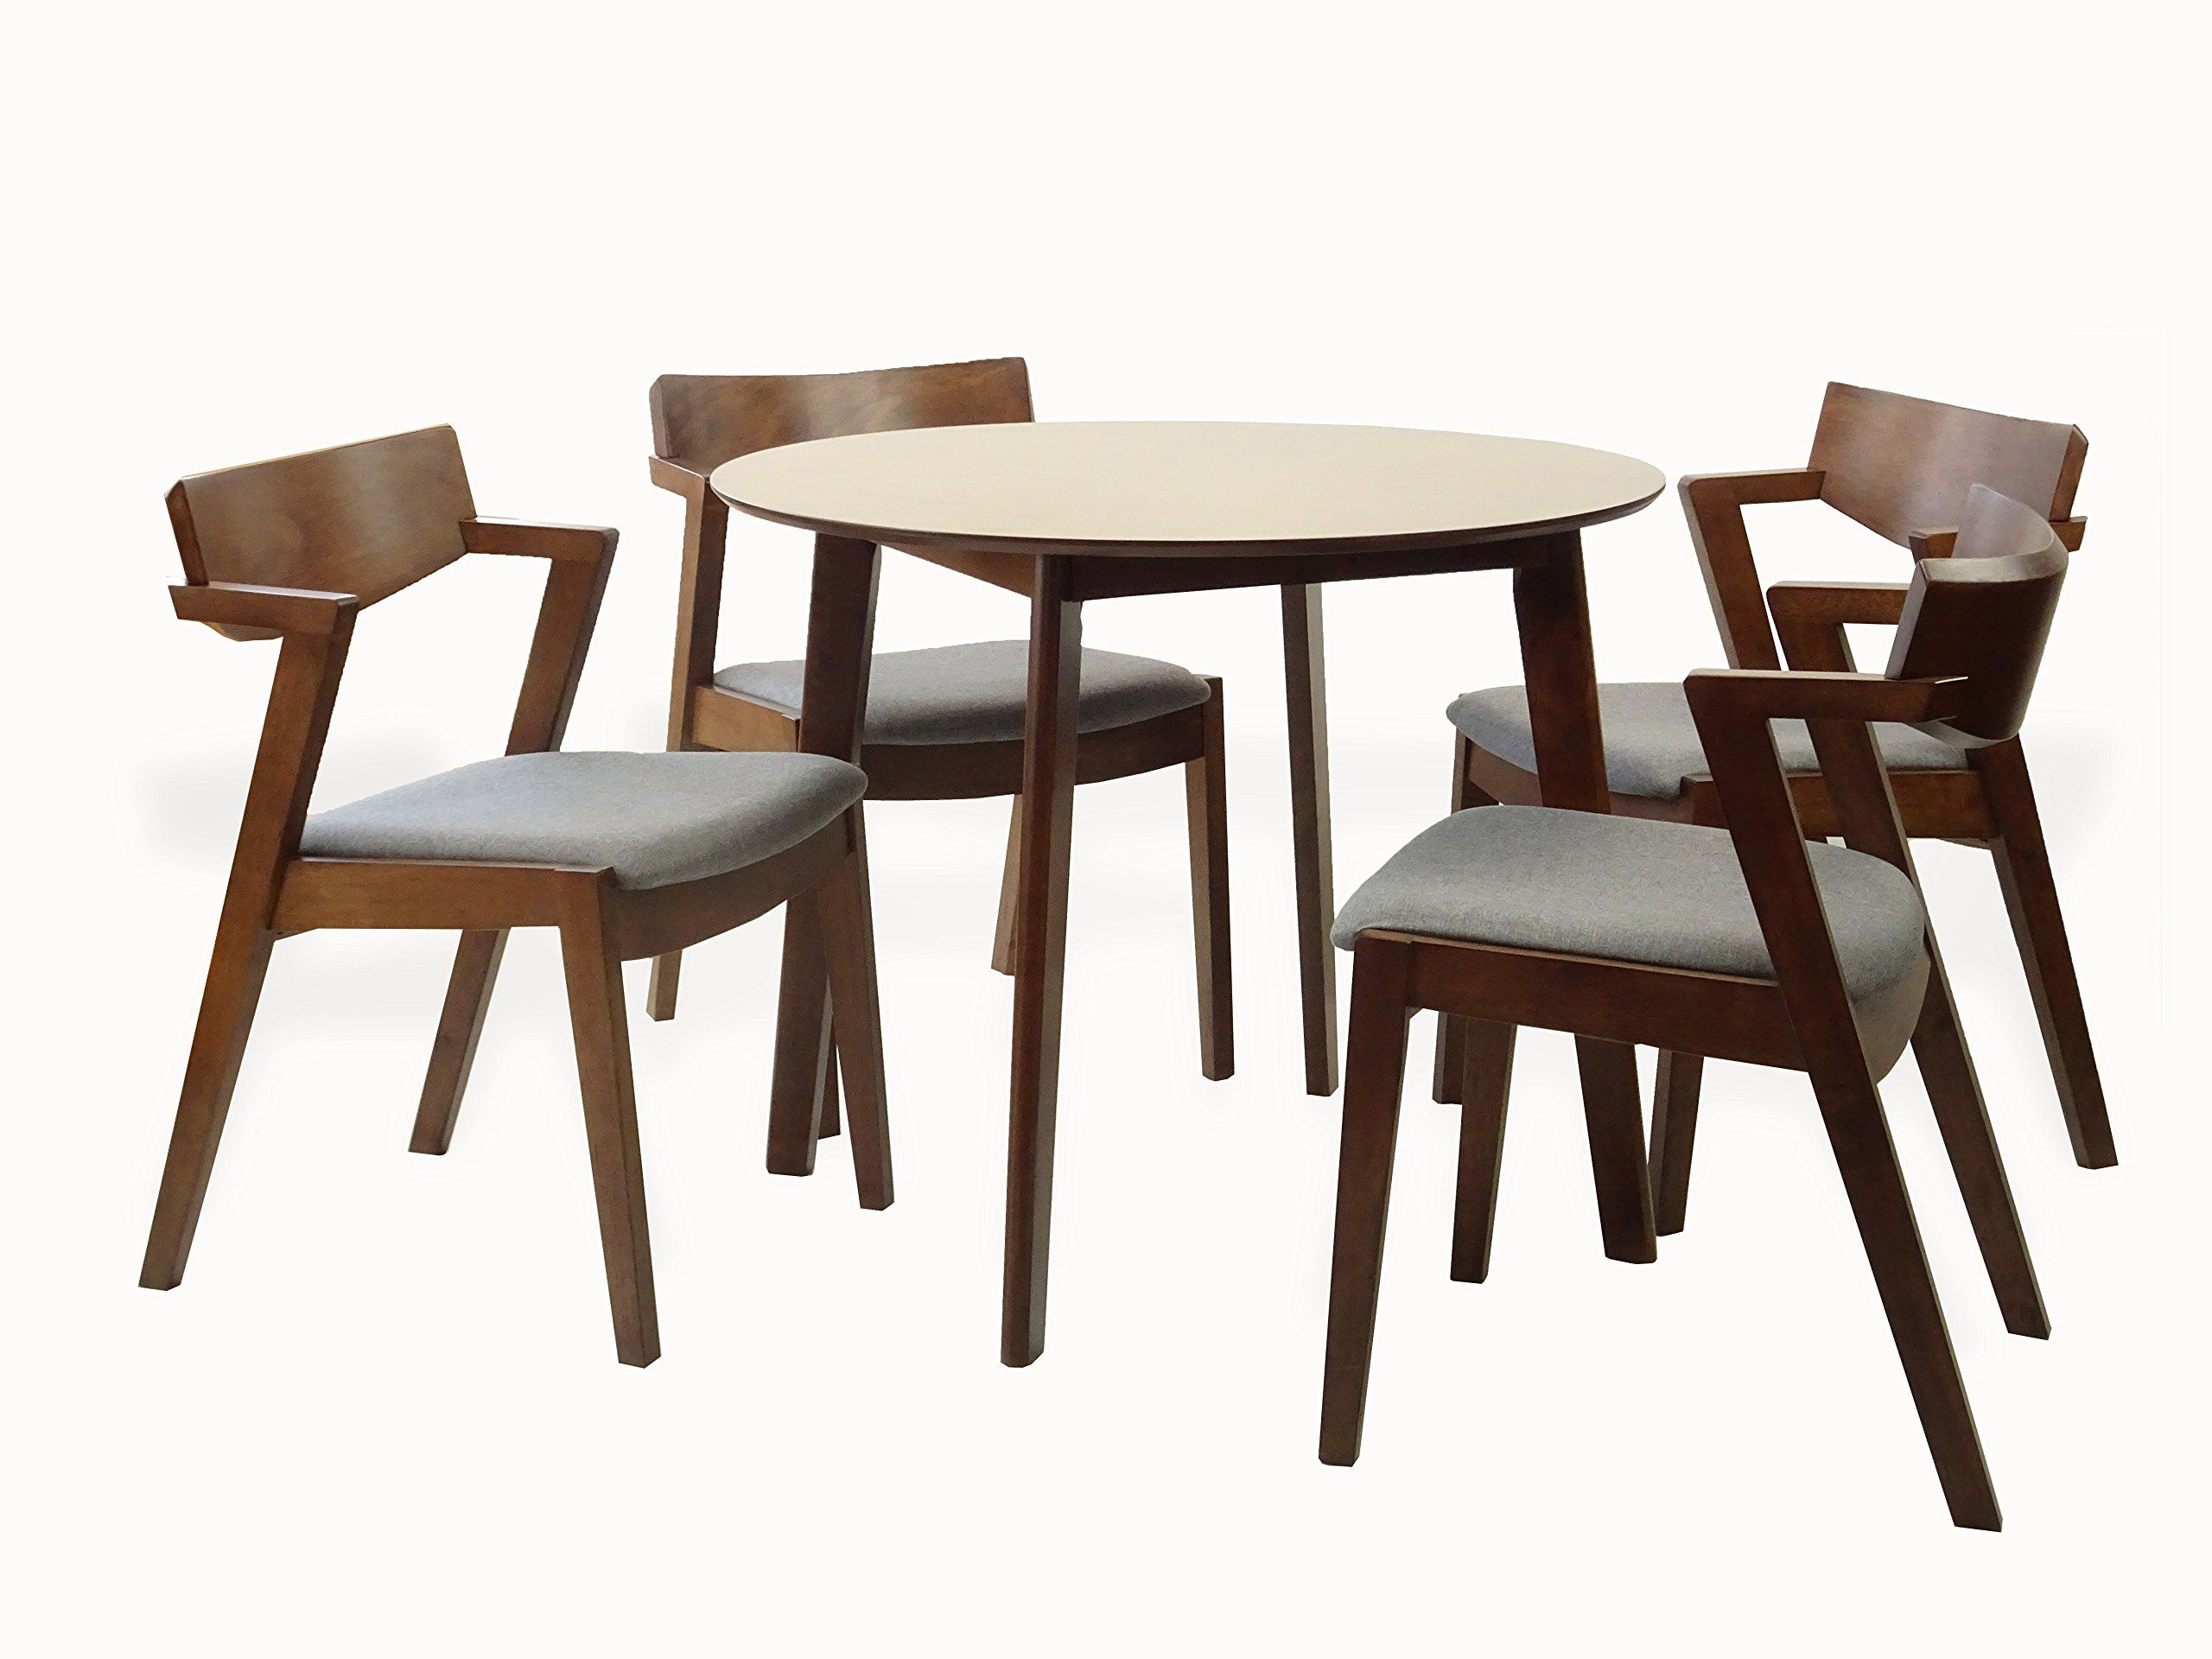 Rattan Wicker Furniture Set Of 5 Dining Kitchen Round Table And 4 Tracy Armchairs Solid Wood W Padded Seat Medium Kitchen Armchairs Furniture Dining Furniture